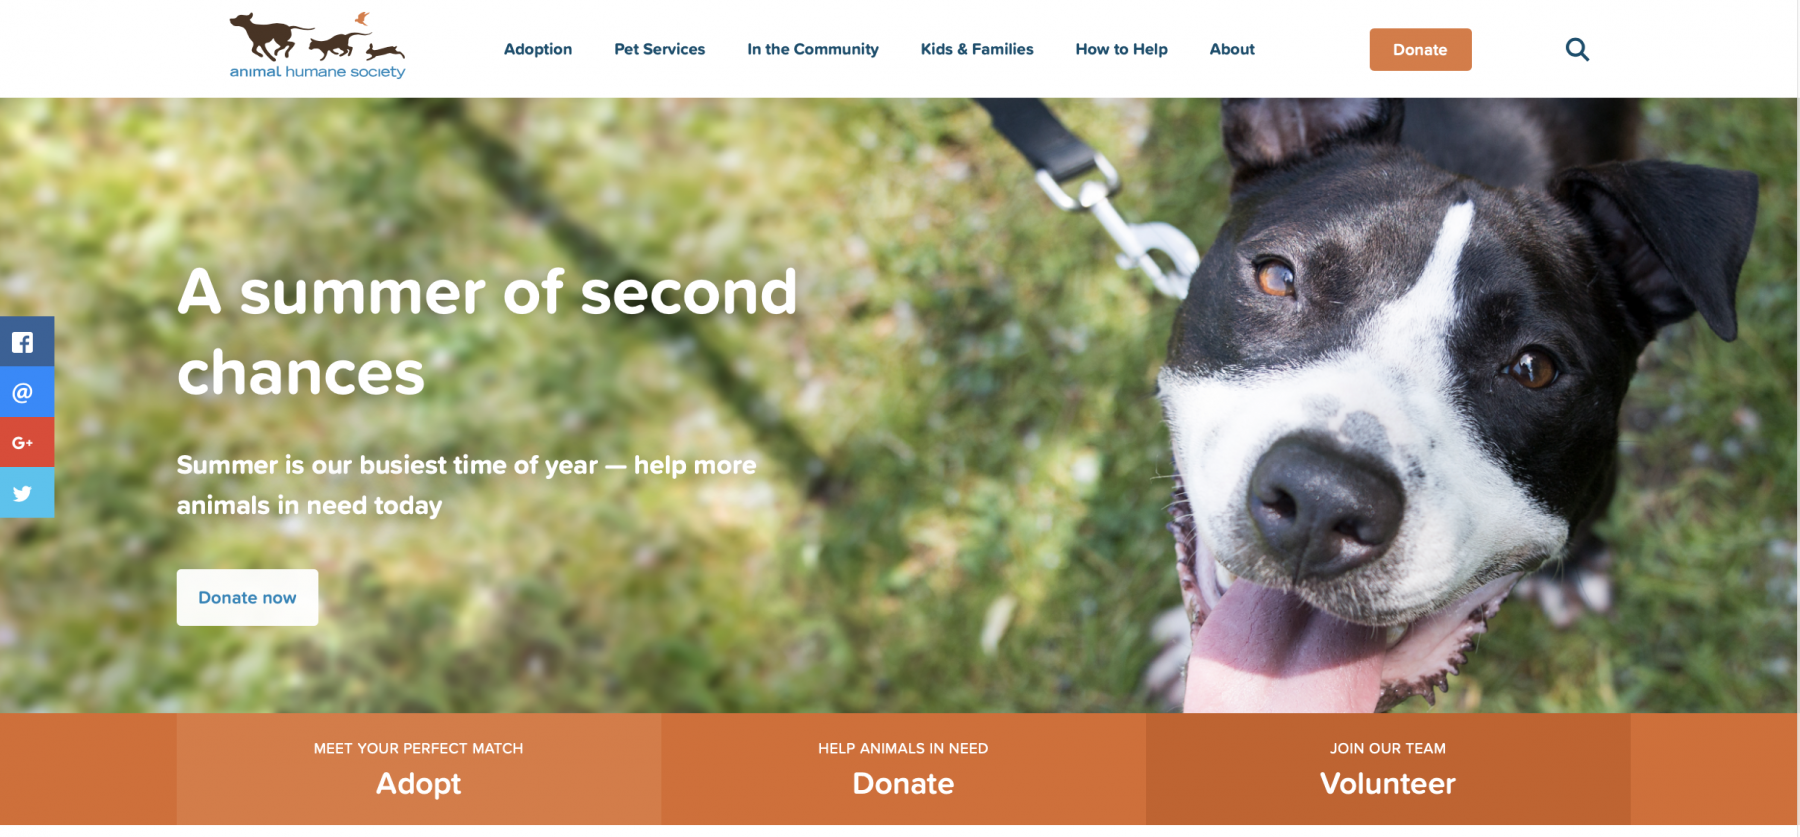 Animal Humane Society Website Home Page